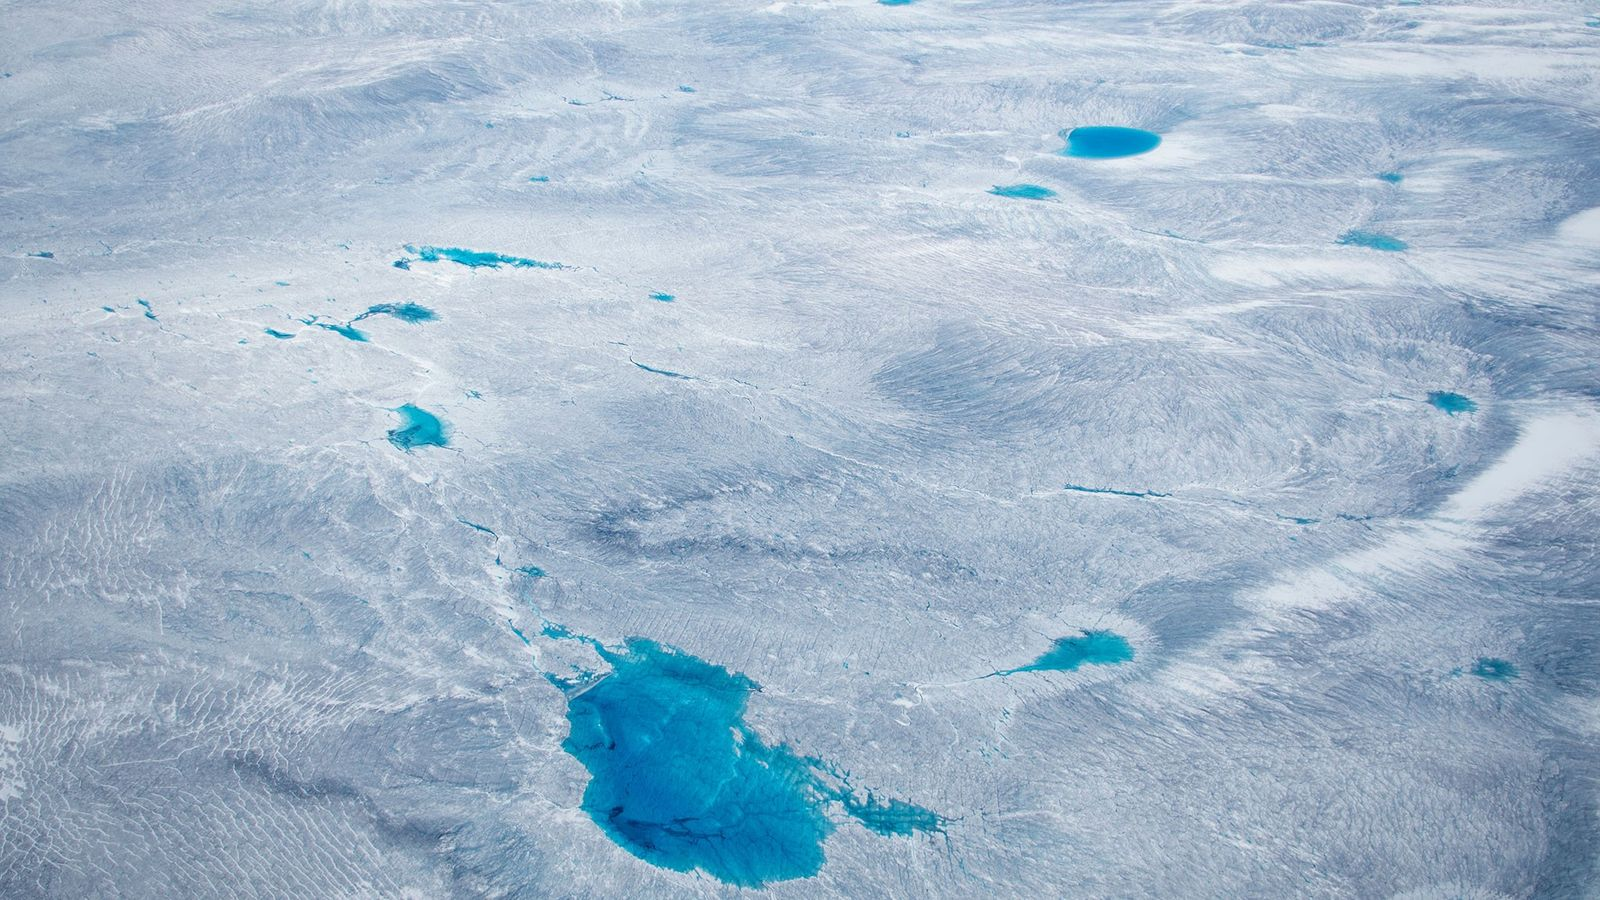 Greenland is covered with a vast amount of ice—but for how long?